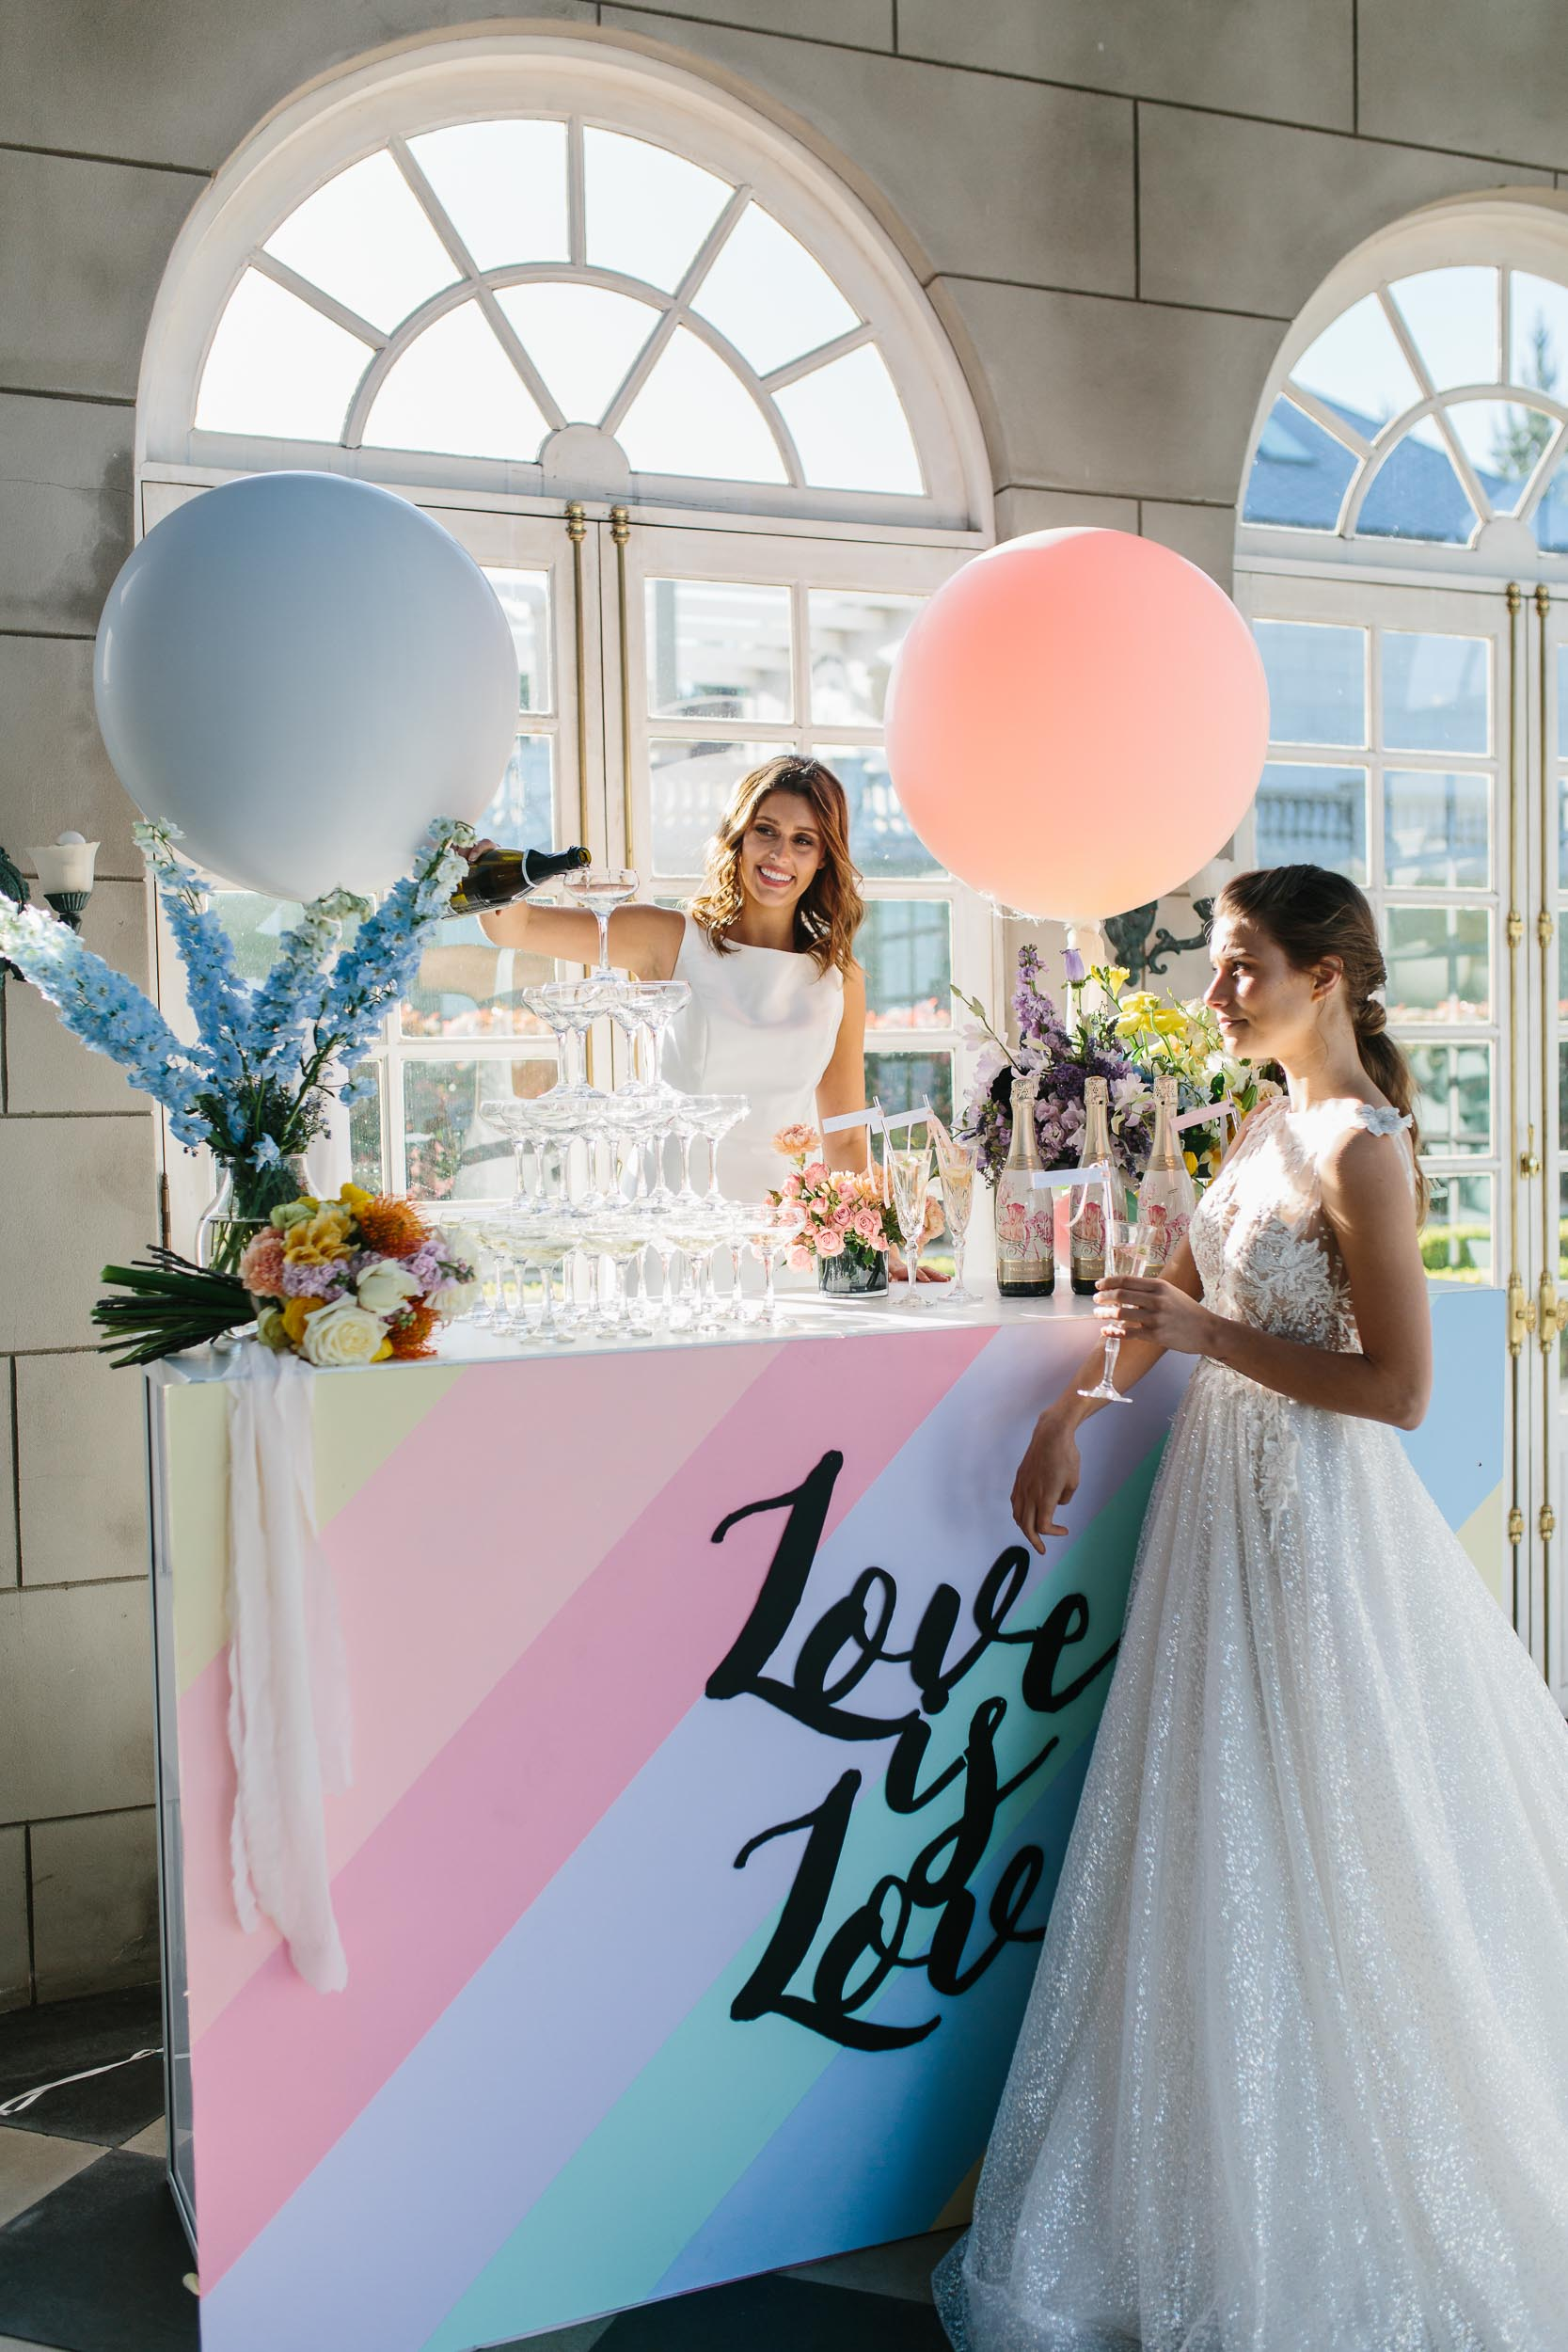 Luxe Colourful Bar with Balloons | Wedding Photography by Kas Richards